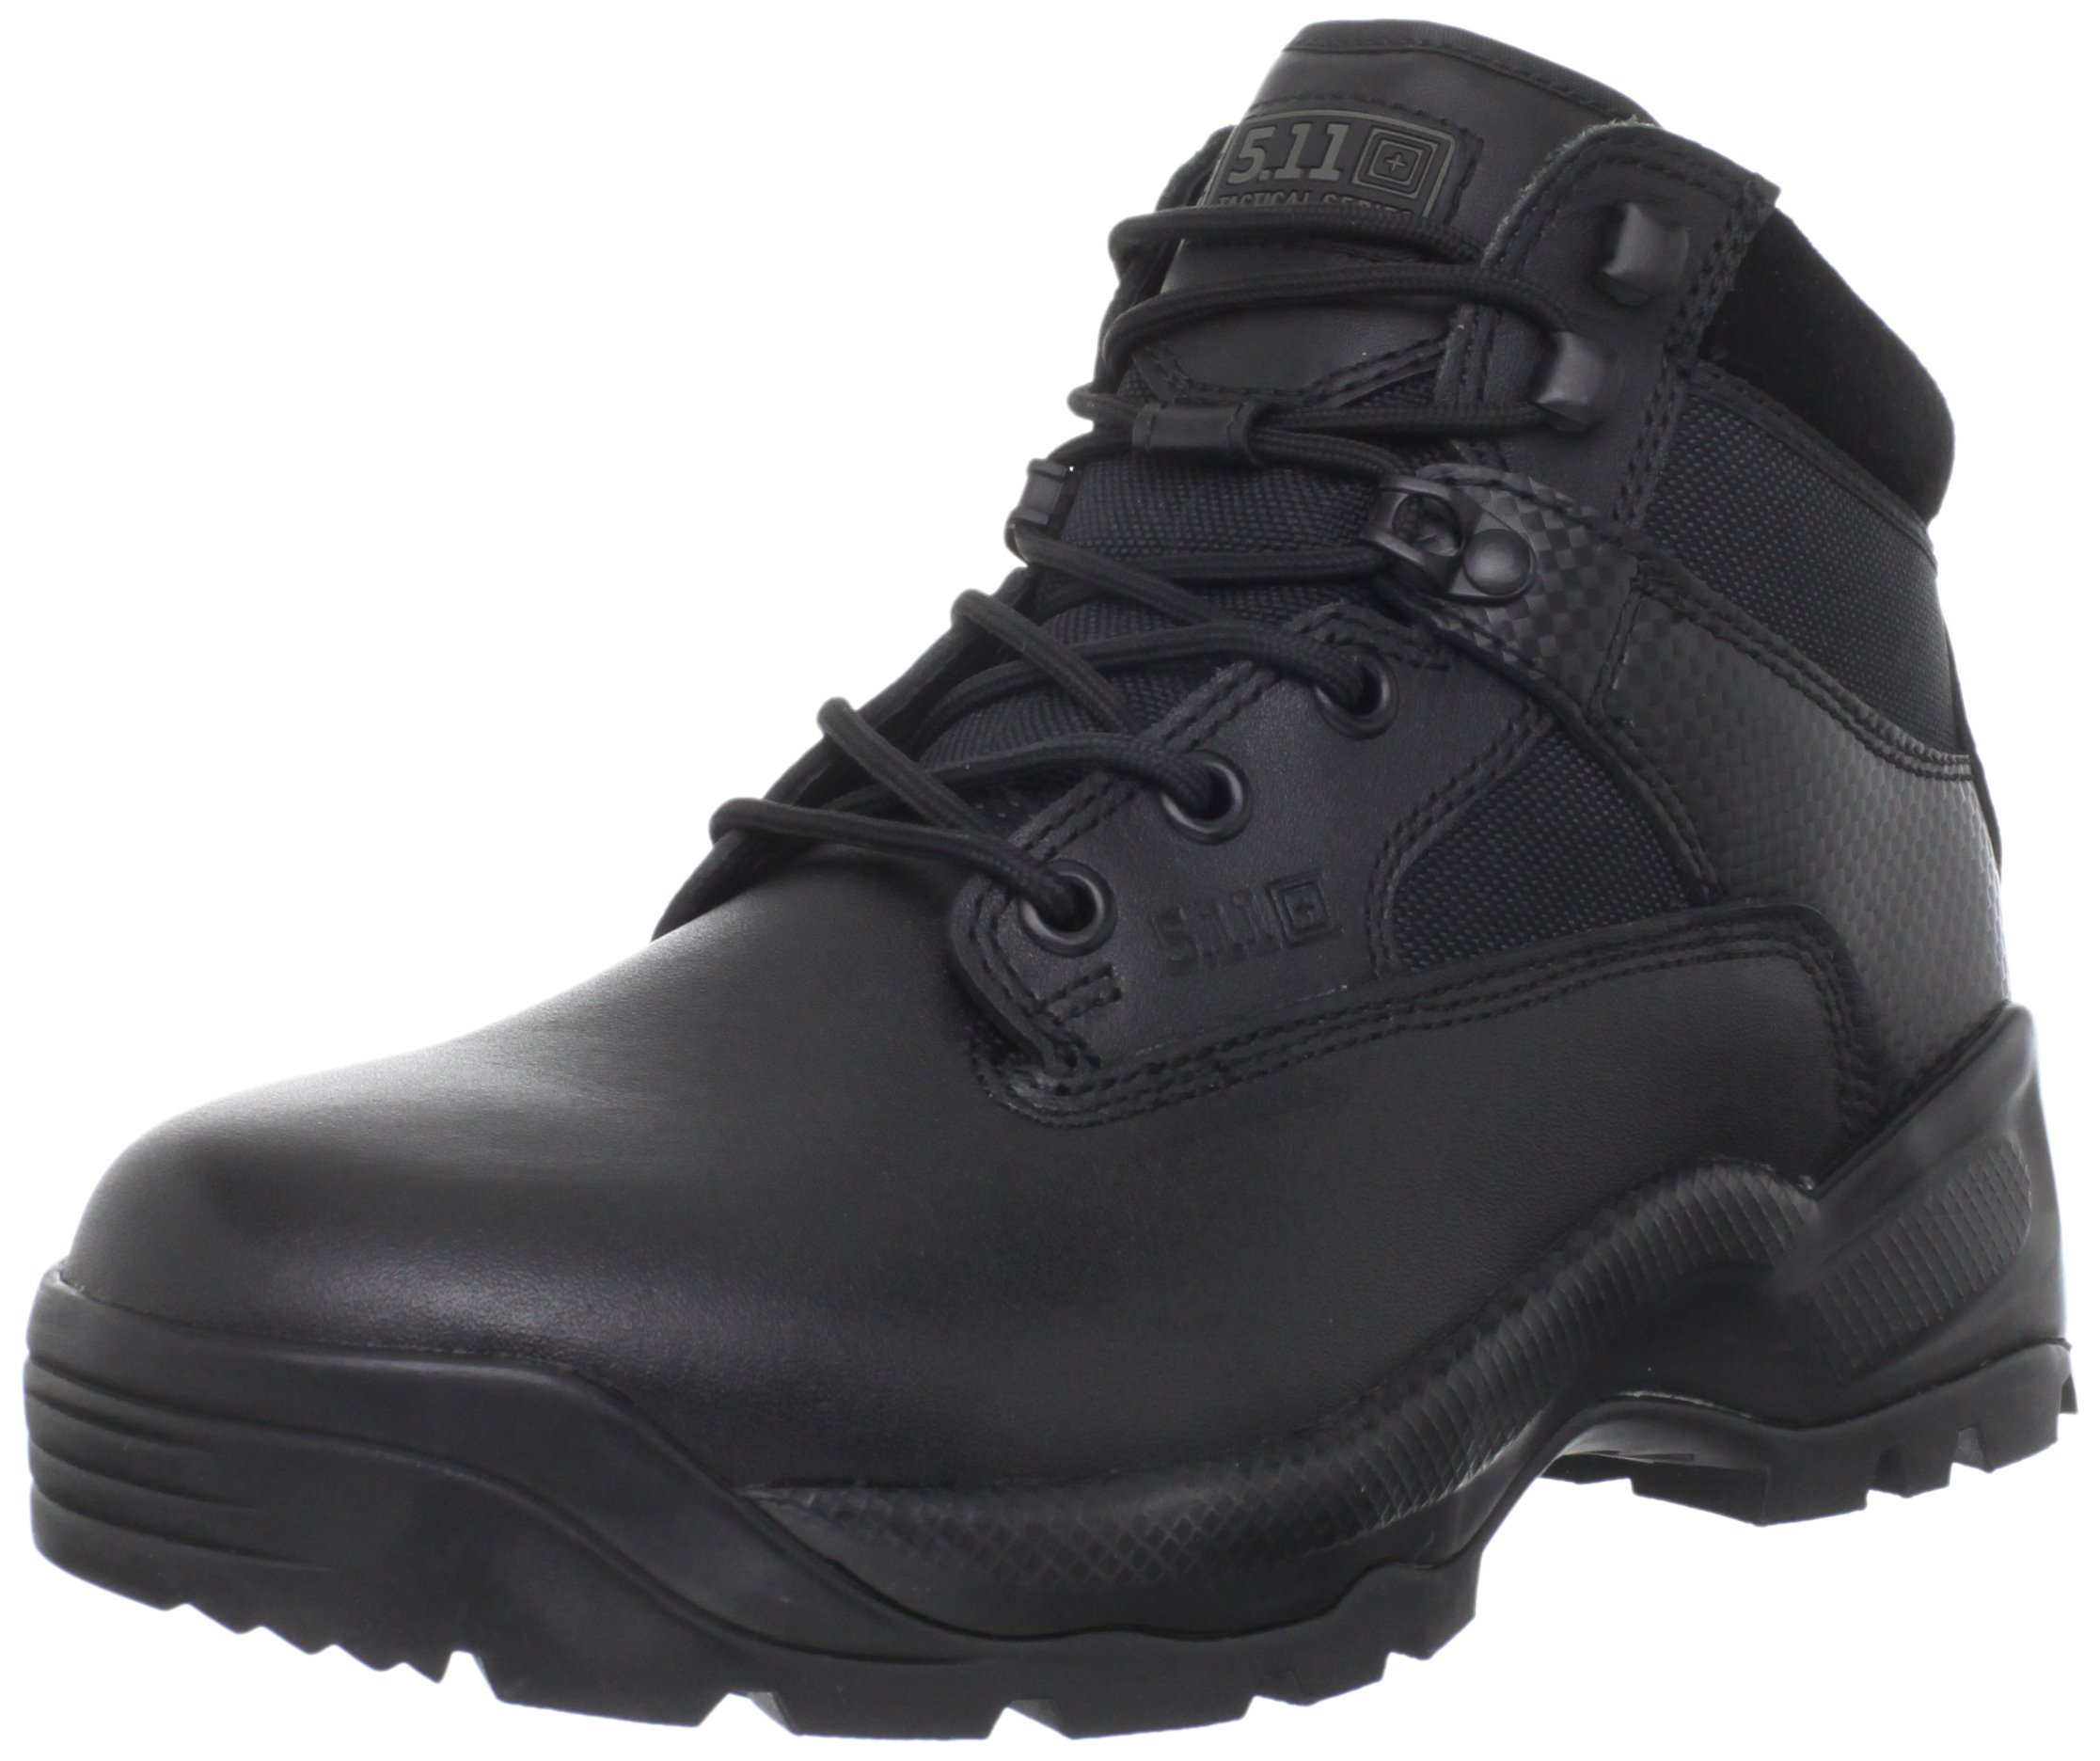 5.11 Tactical A.T.A.C. 6'' Boot, Black, 10.5 by 5.11